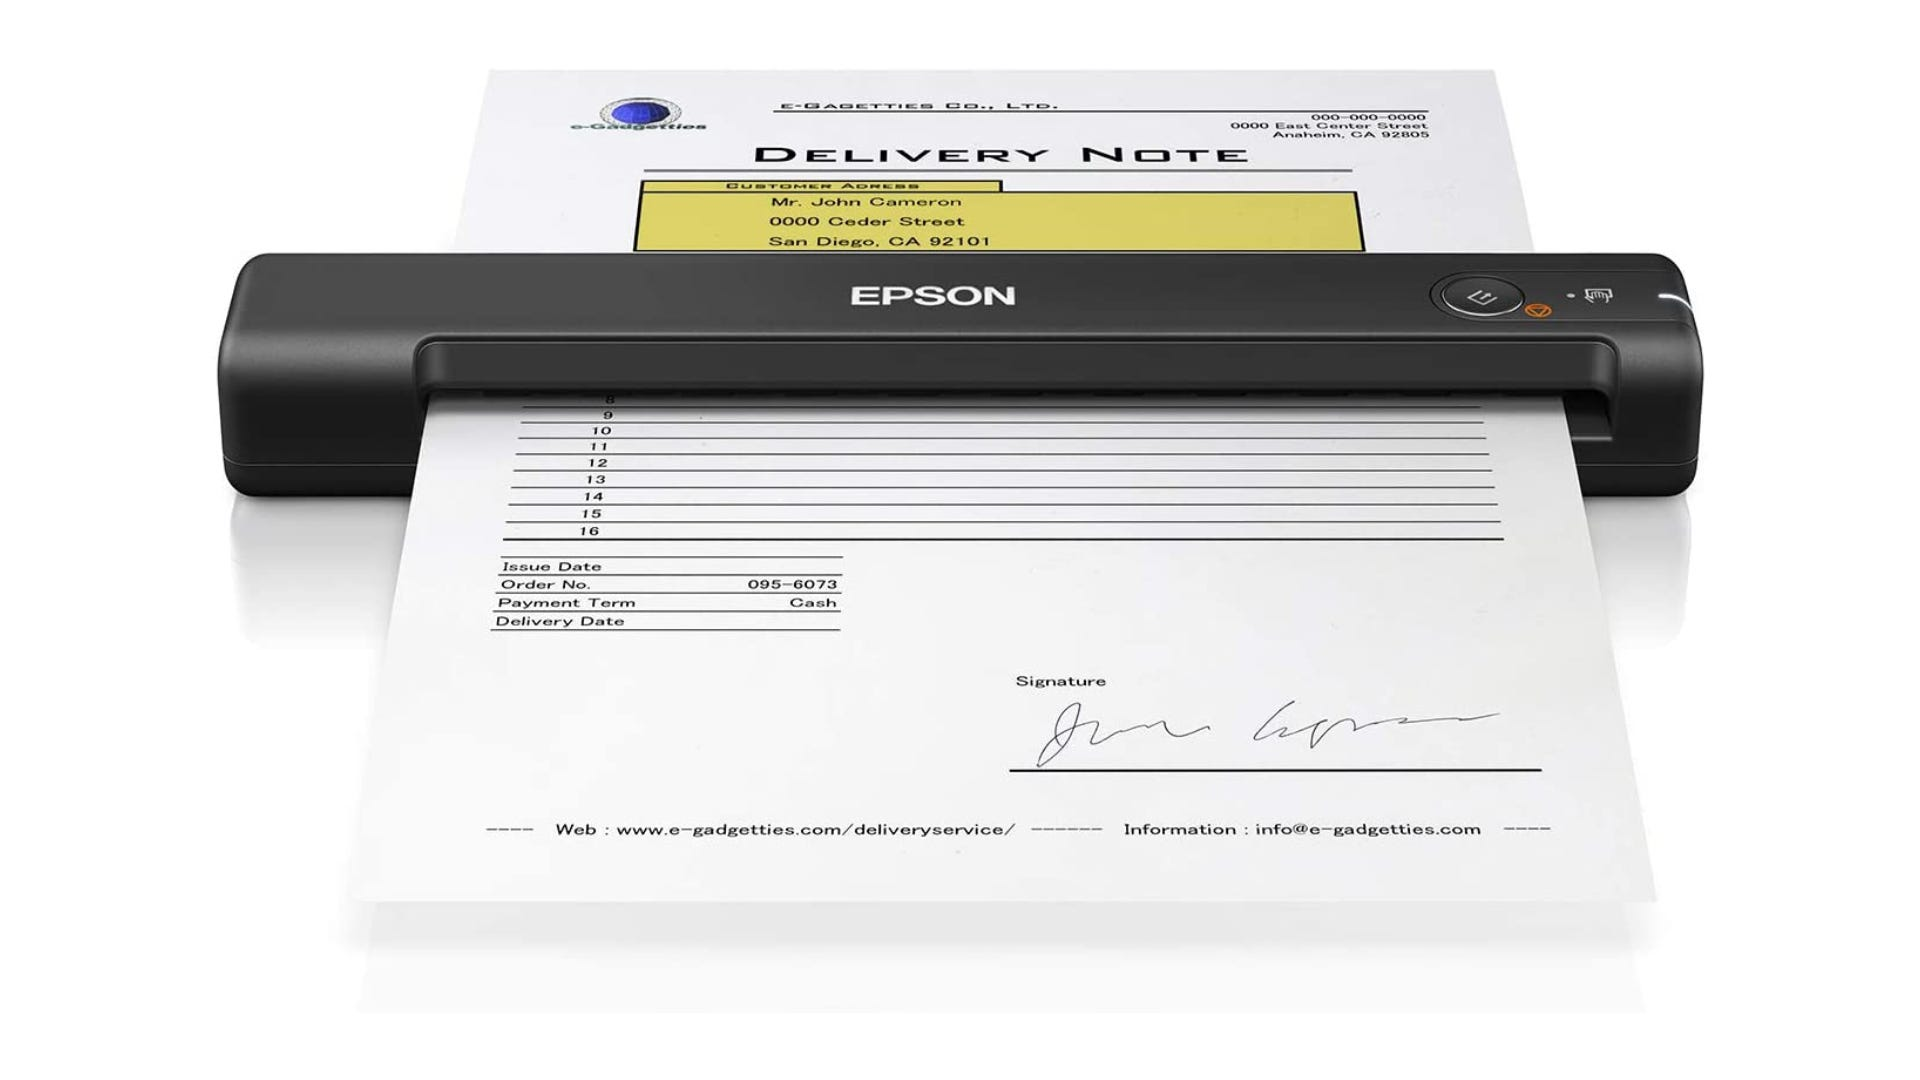 A small document scanner scanning a document.